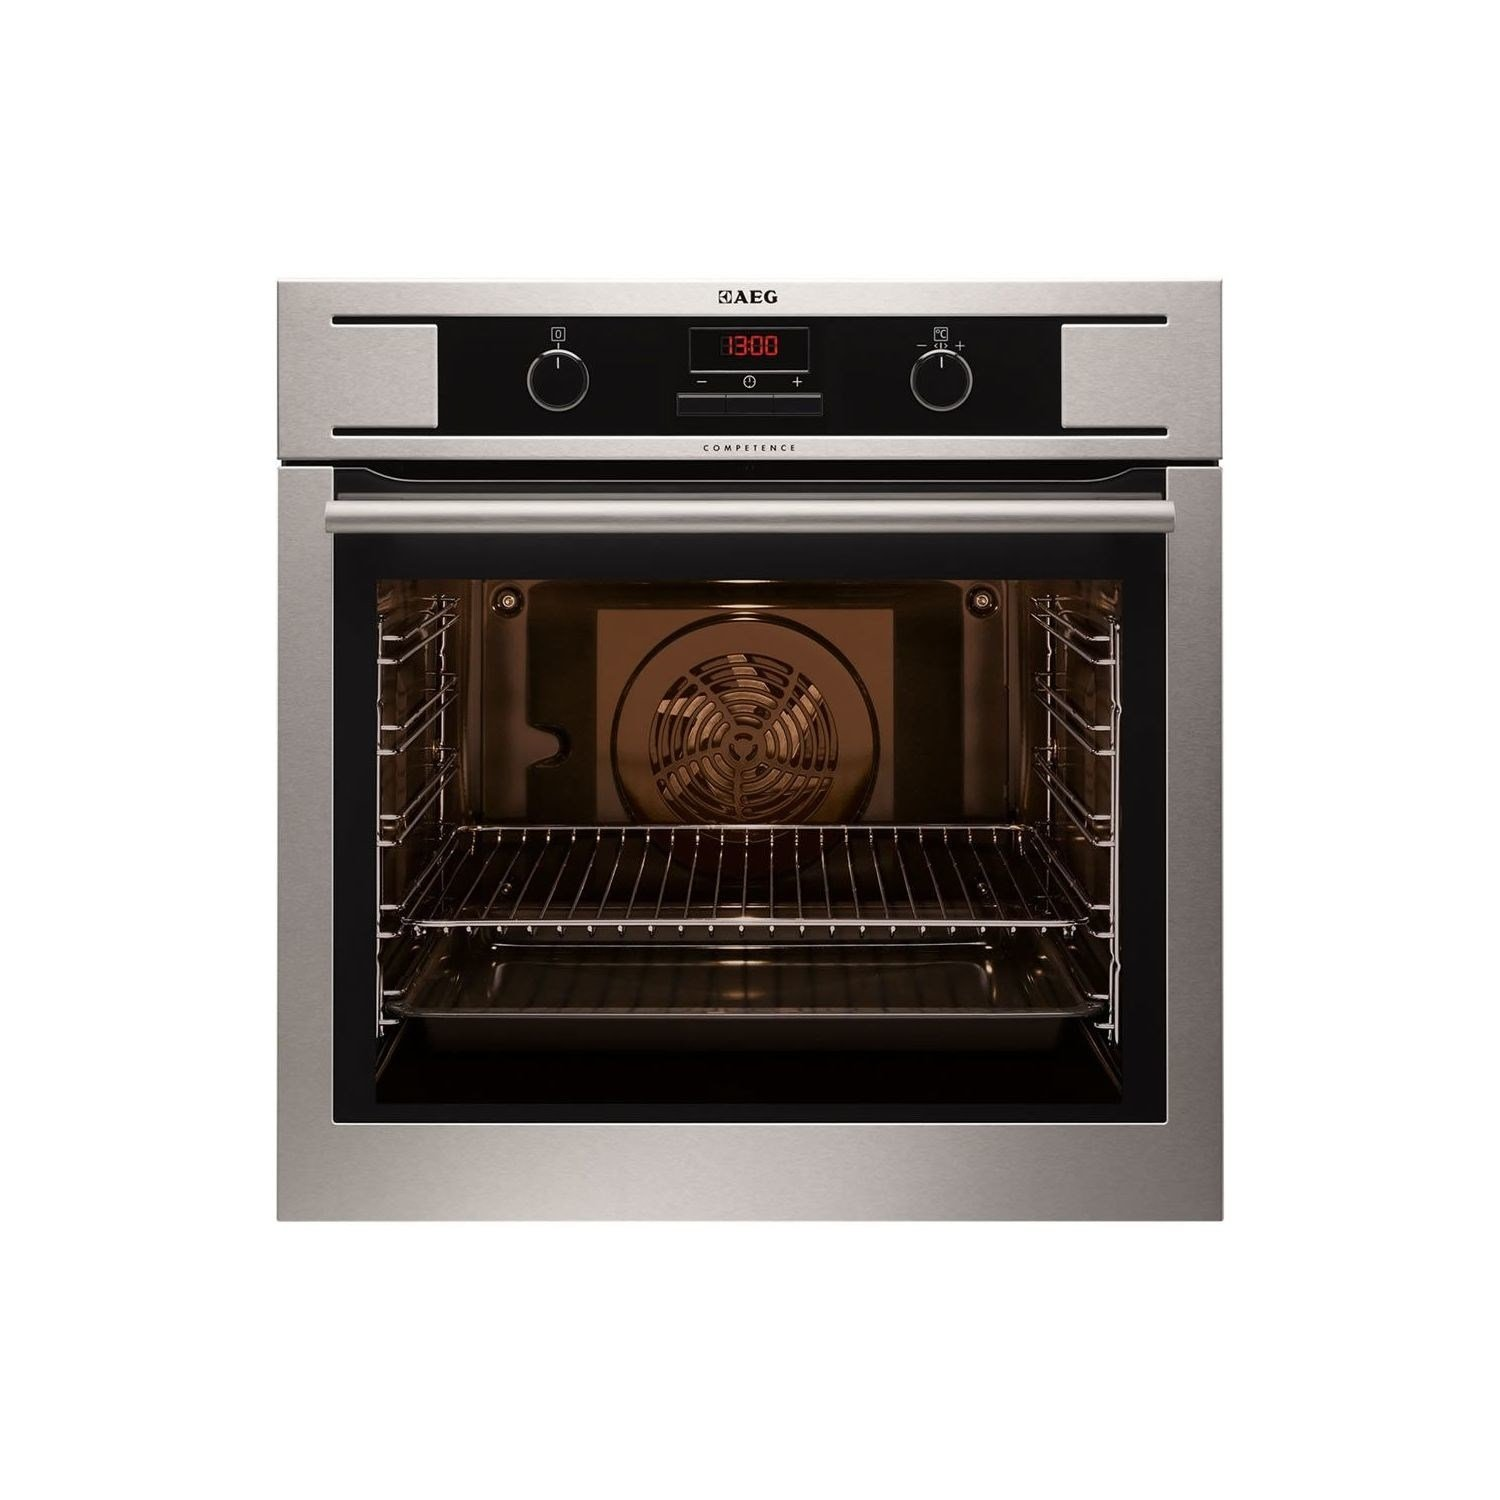 AEG BP300322KM Multi Function Built in Single Electric Oven - Stainless Steel